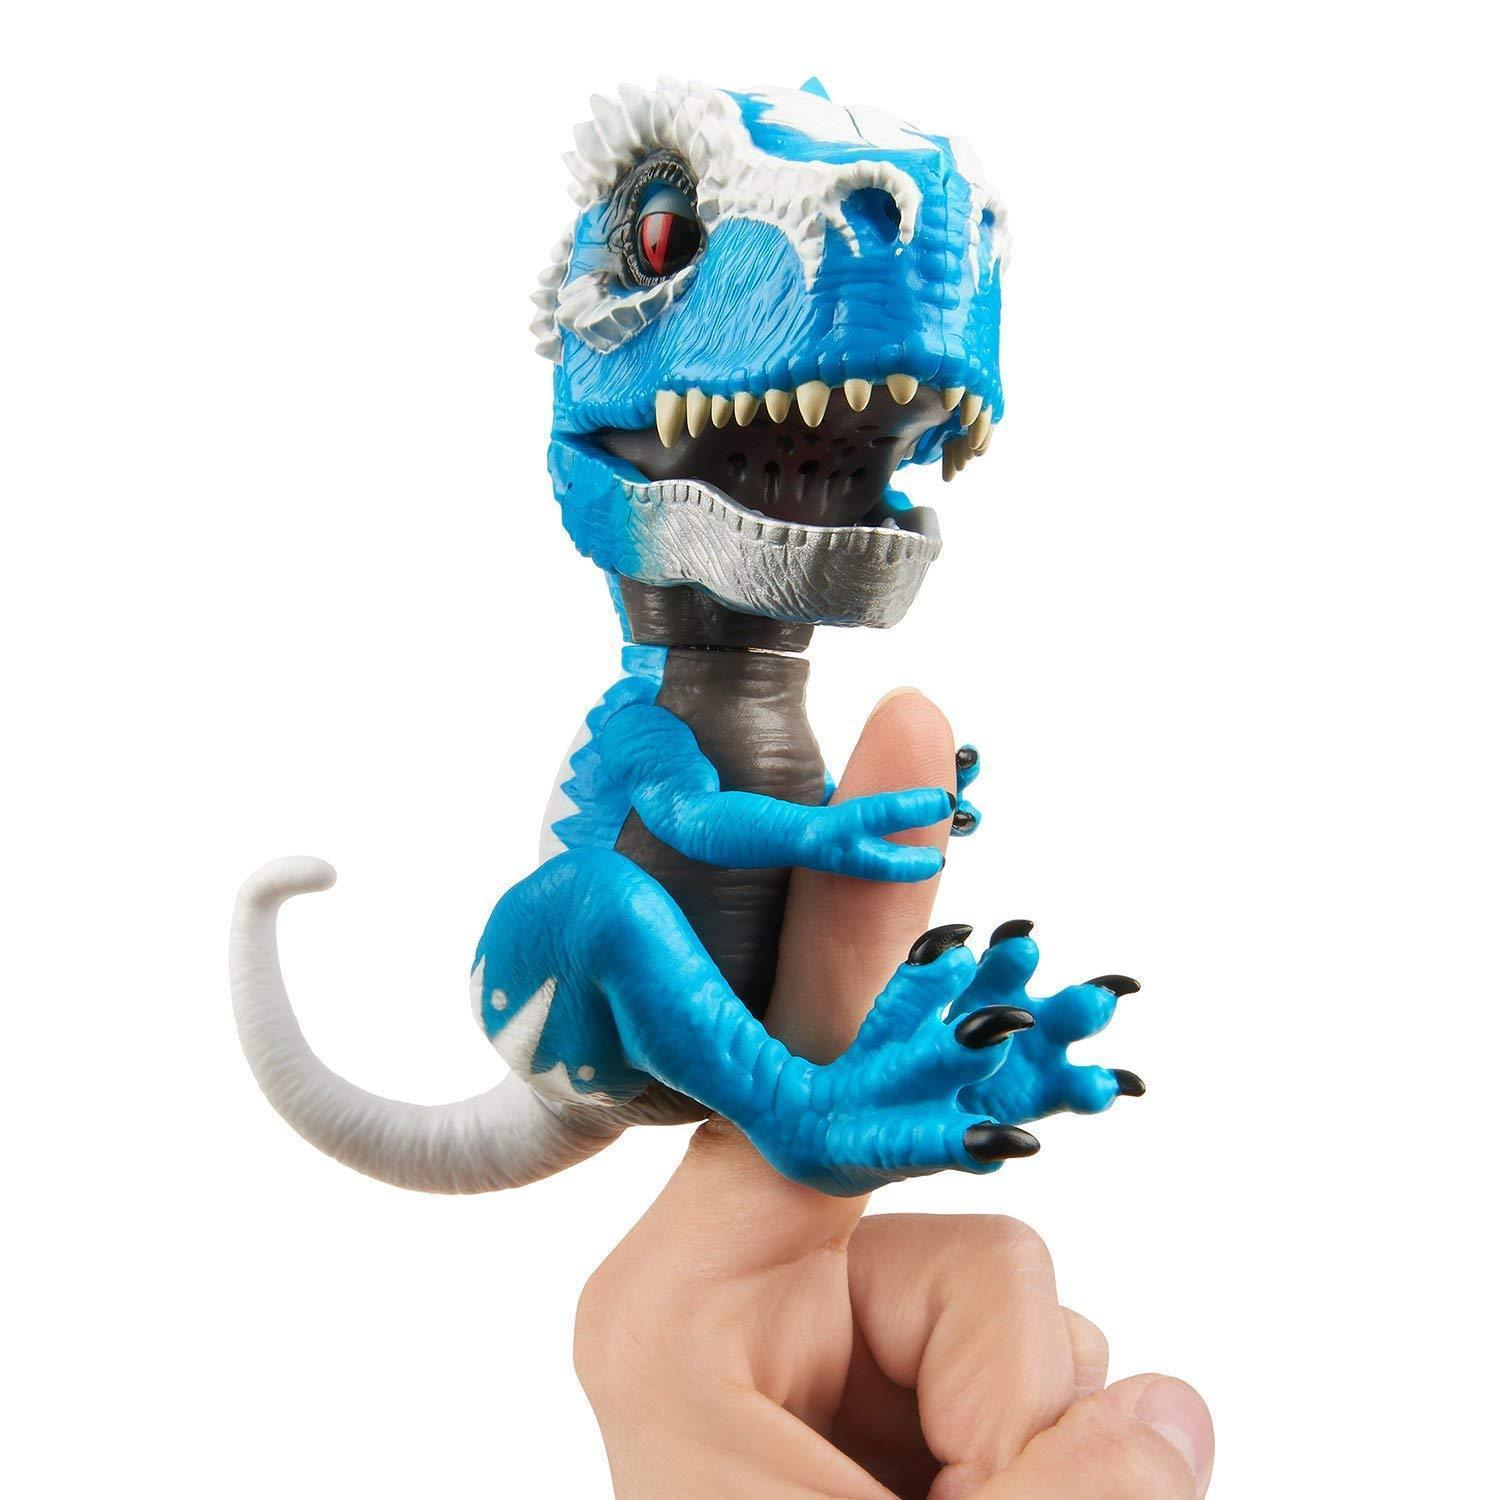 Wowwee Untamed T-Rex Dinosaur Fingerlings Interactive Collectible Sound Move Toy